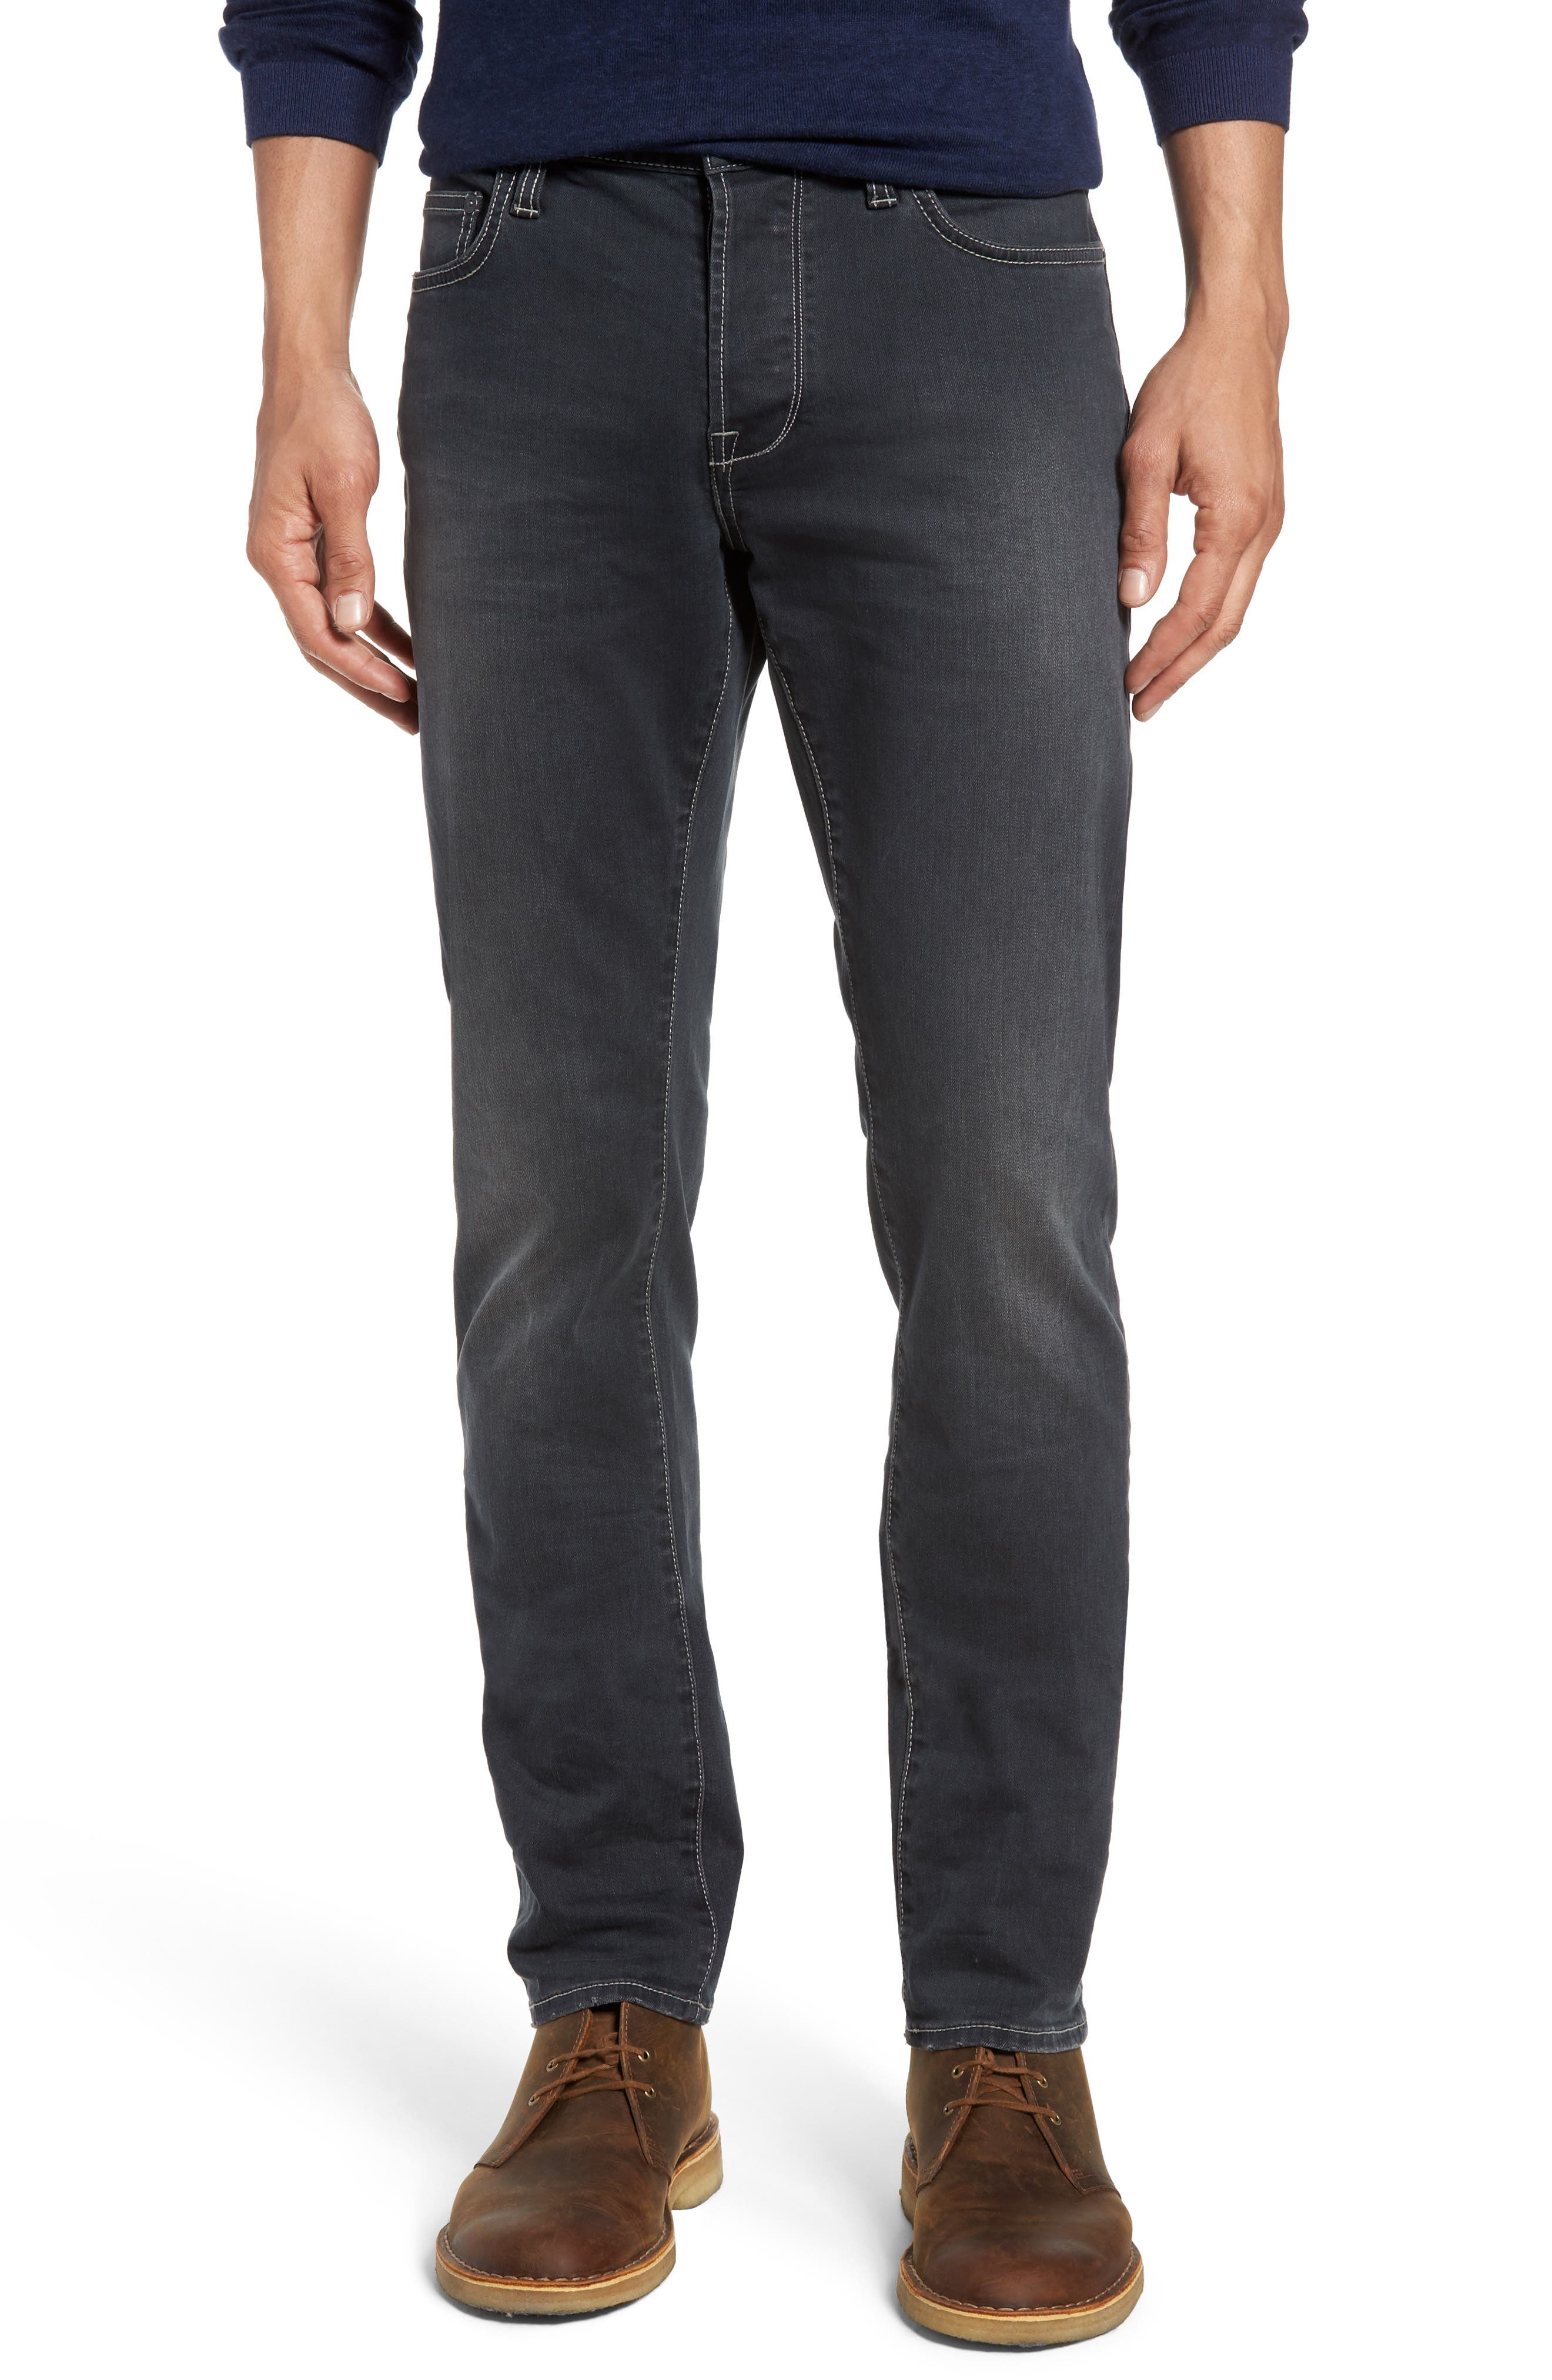 Wight Skinny Jeans,                             Main thumbnail 3, color,